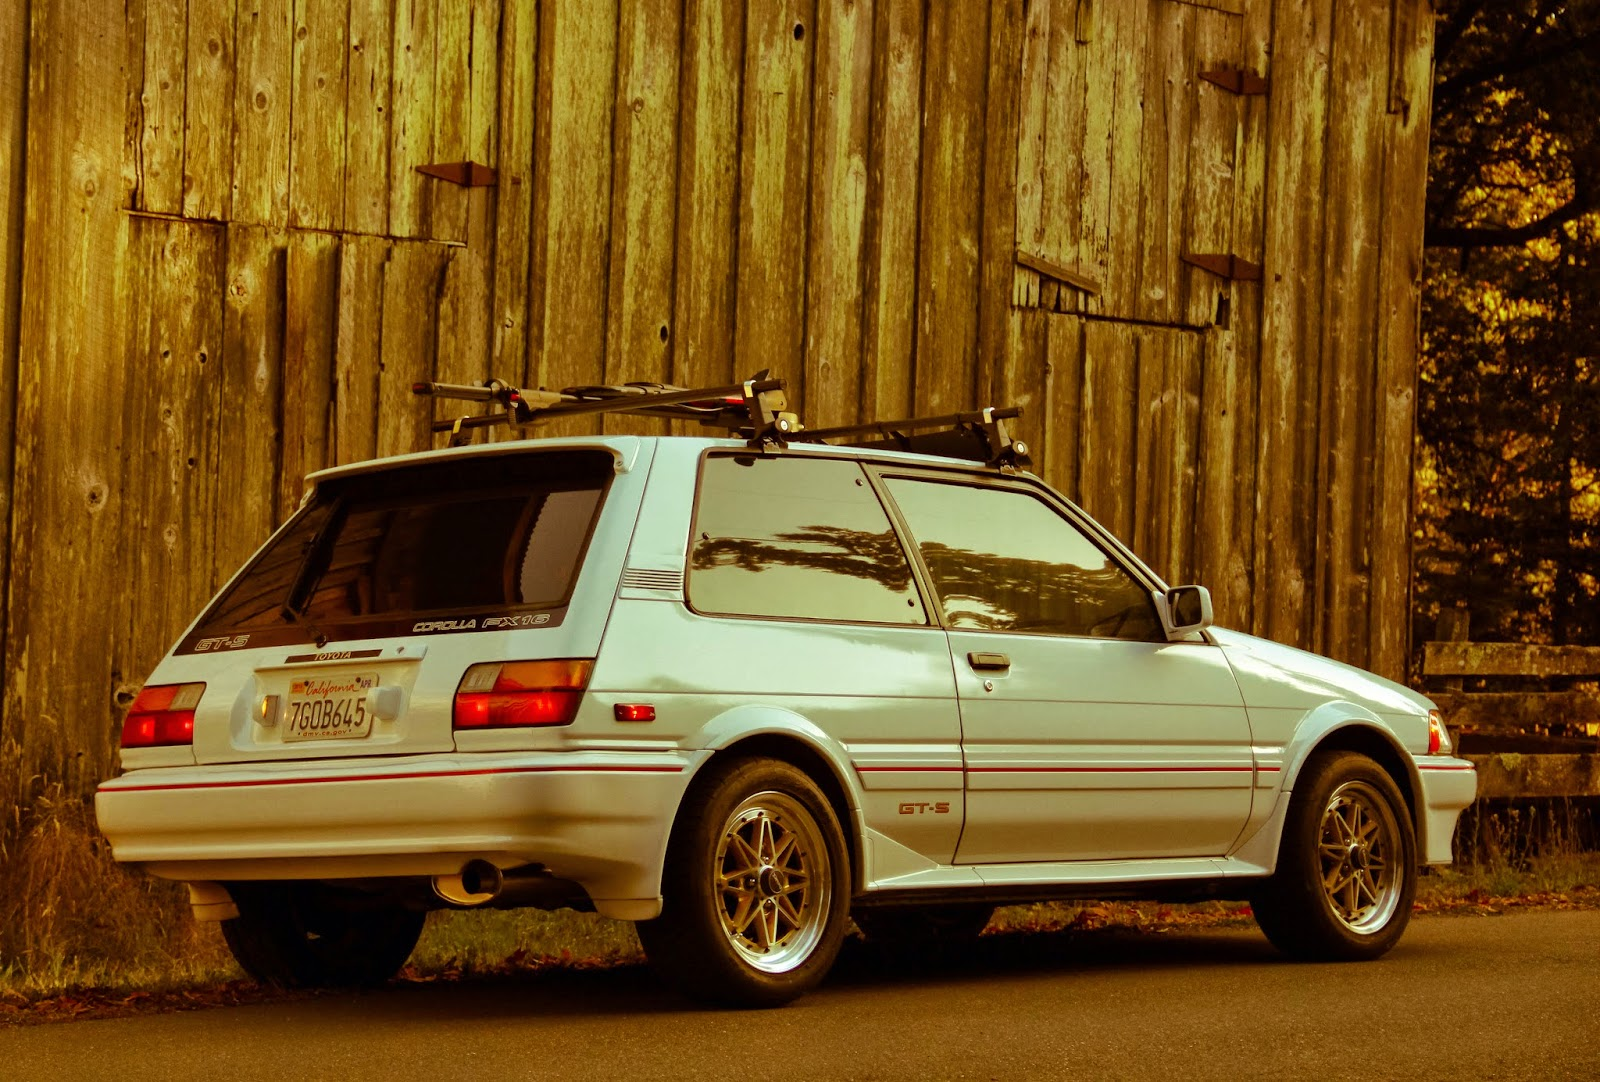 Toyota Corolla FX-16 GTS 1987: Pretty Pictures of FX16 GT-S